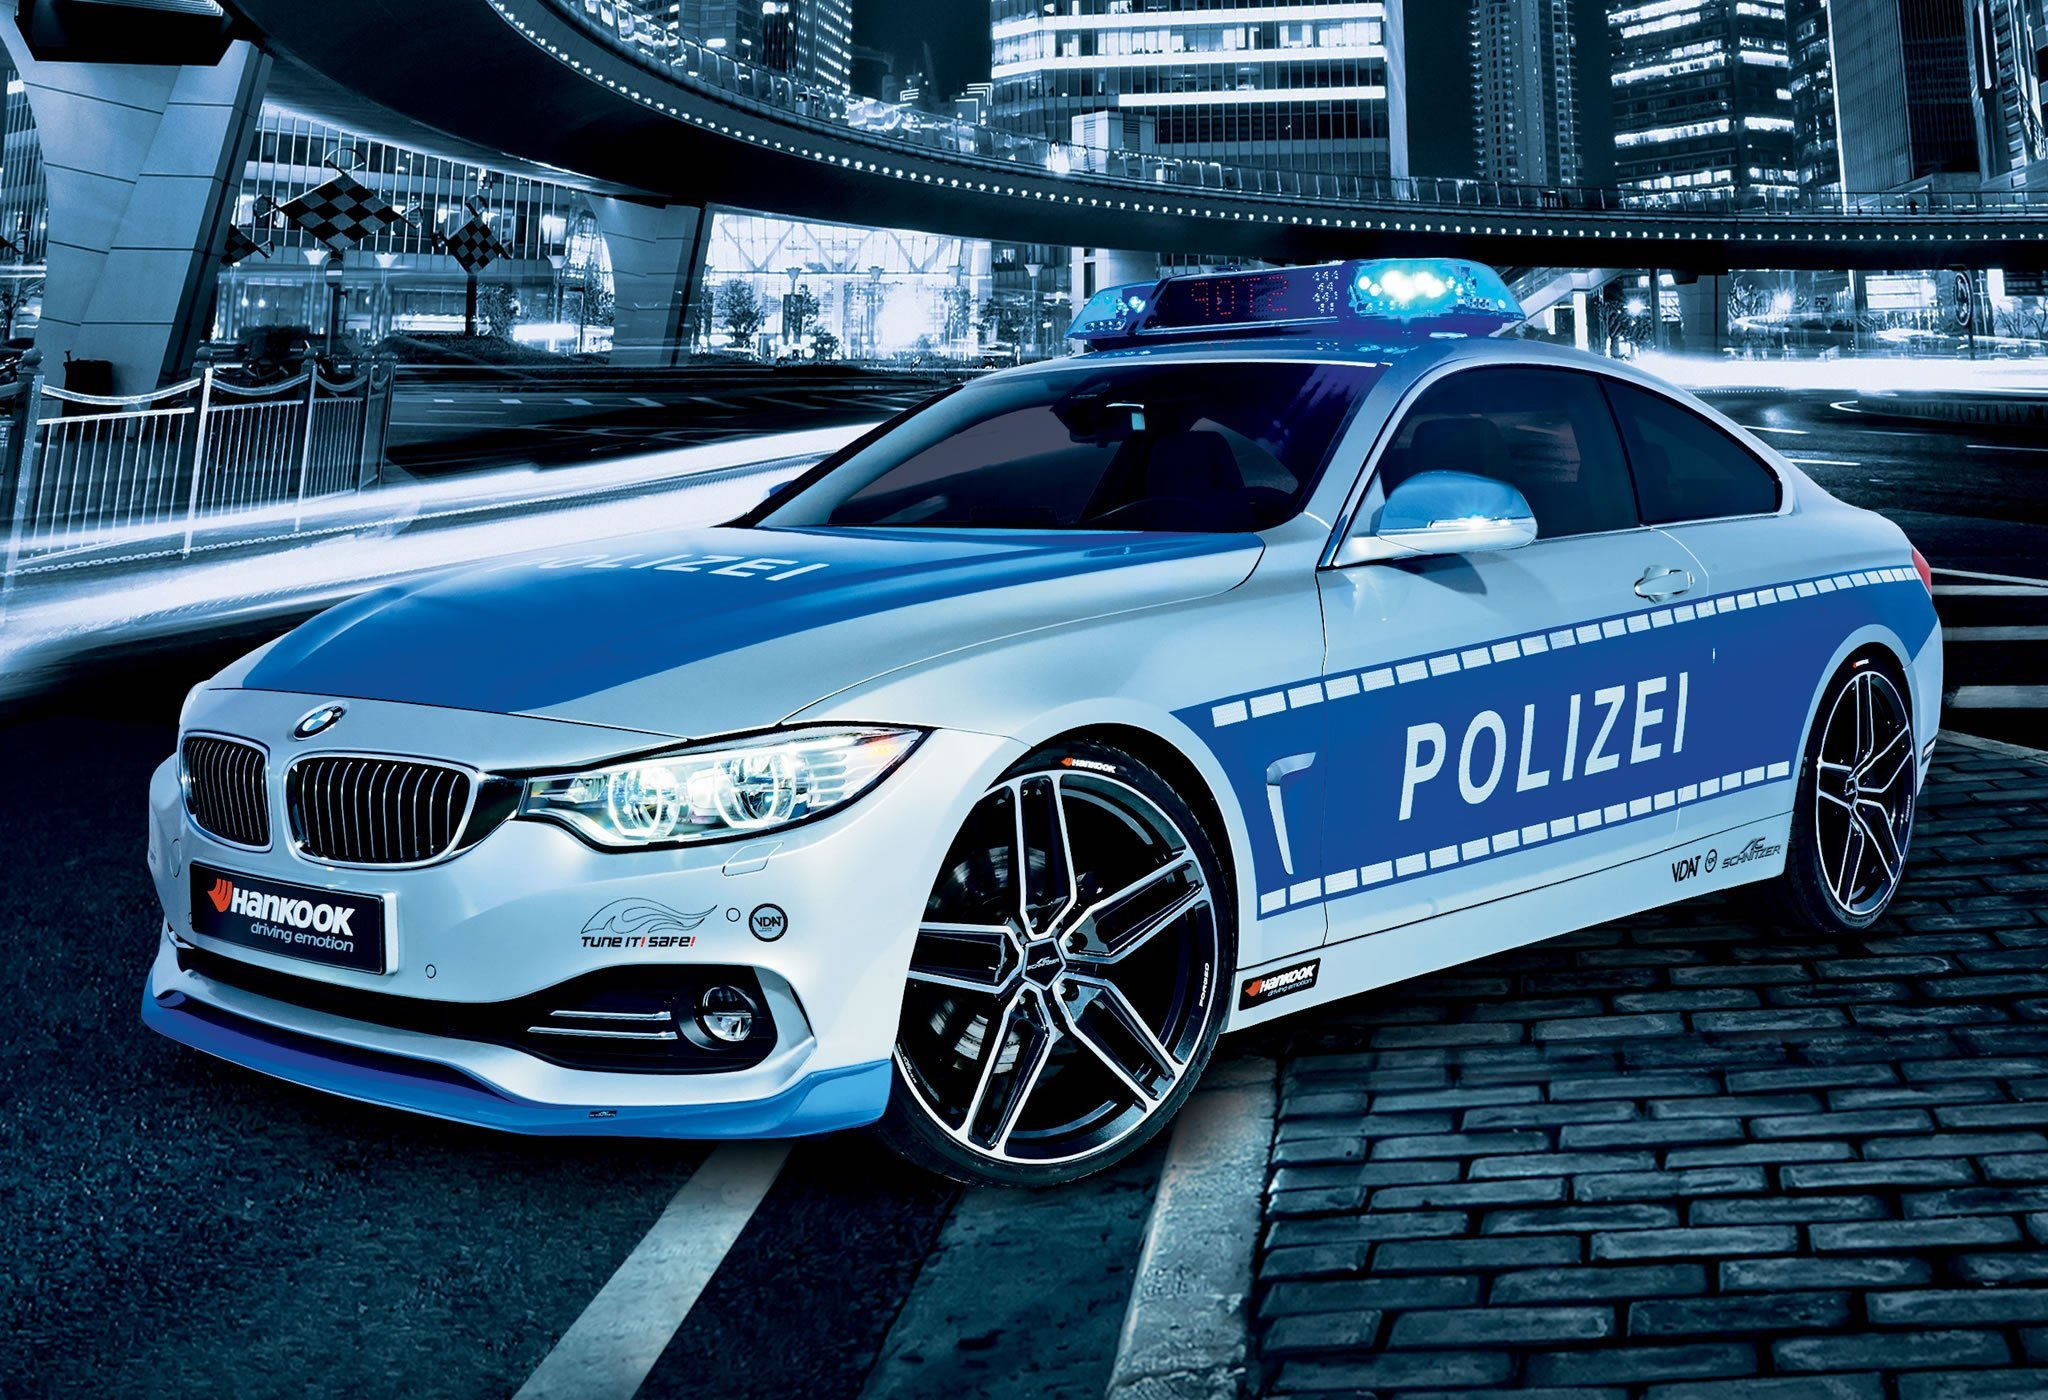 Latest 2013 Bmw 428I Coupe Polizei By Ac Schnitzer Front Photo Free Download